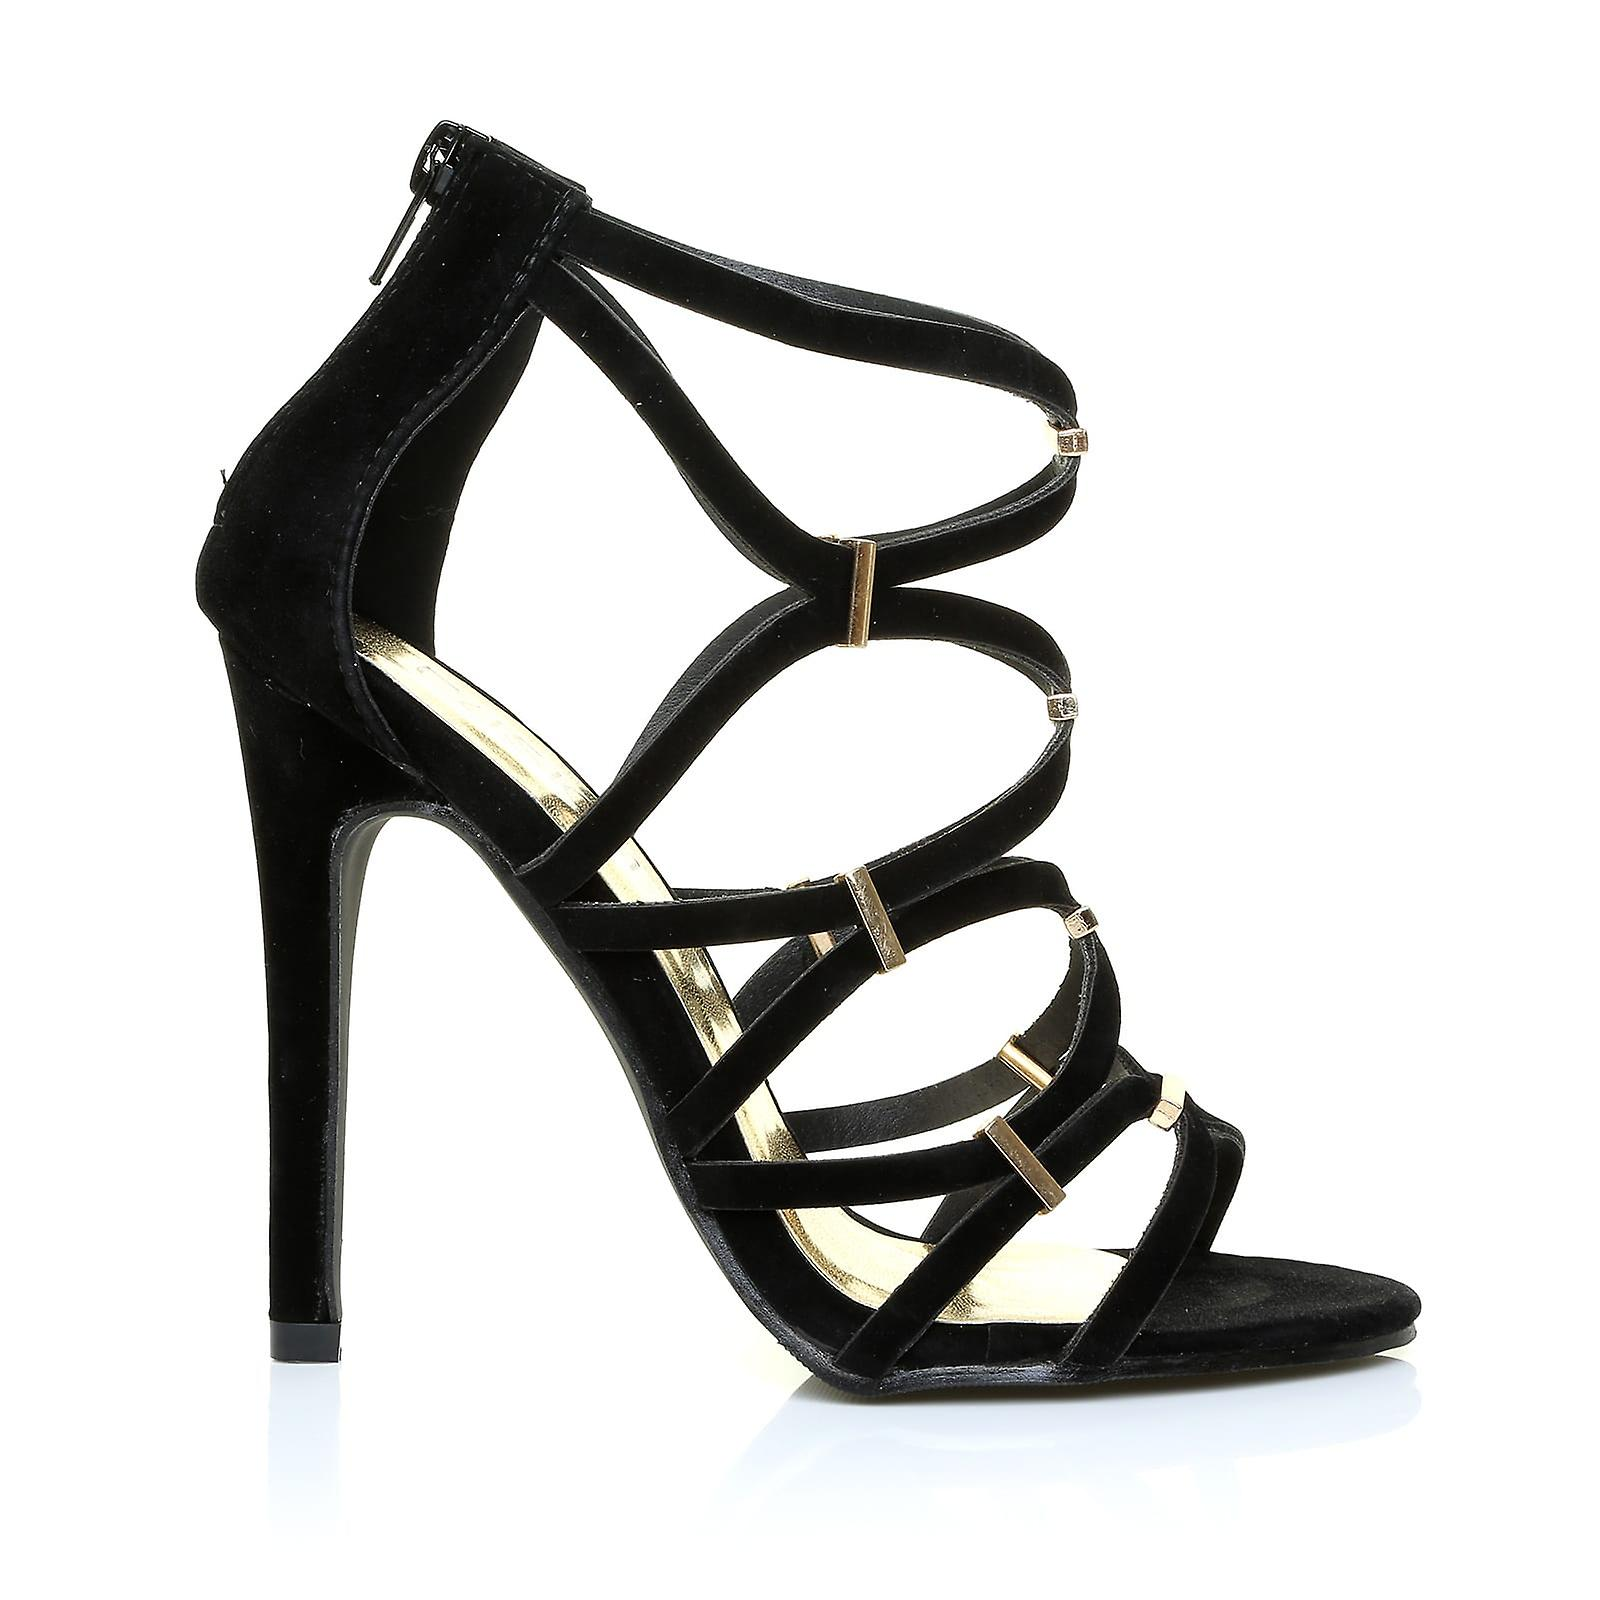 LEZ Black Faux Suede  Caged High Heel Stiletto Prom Party Shoes